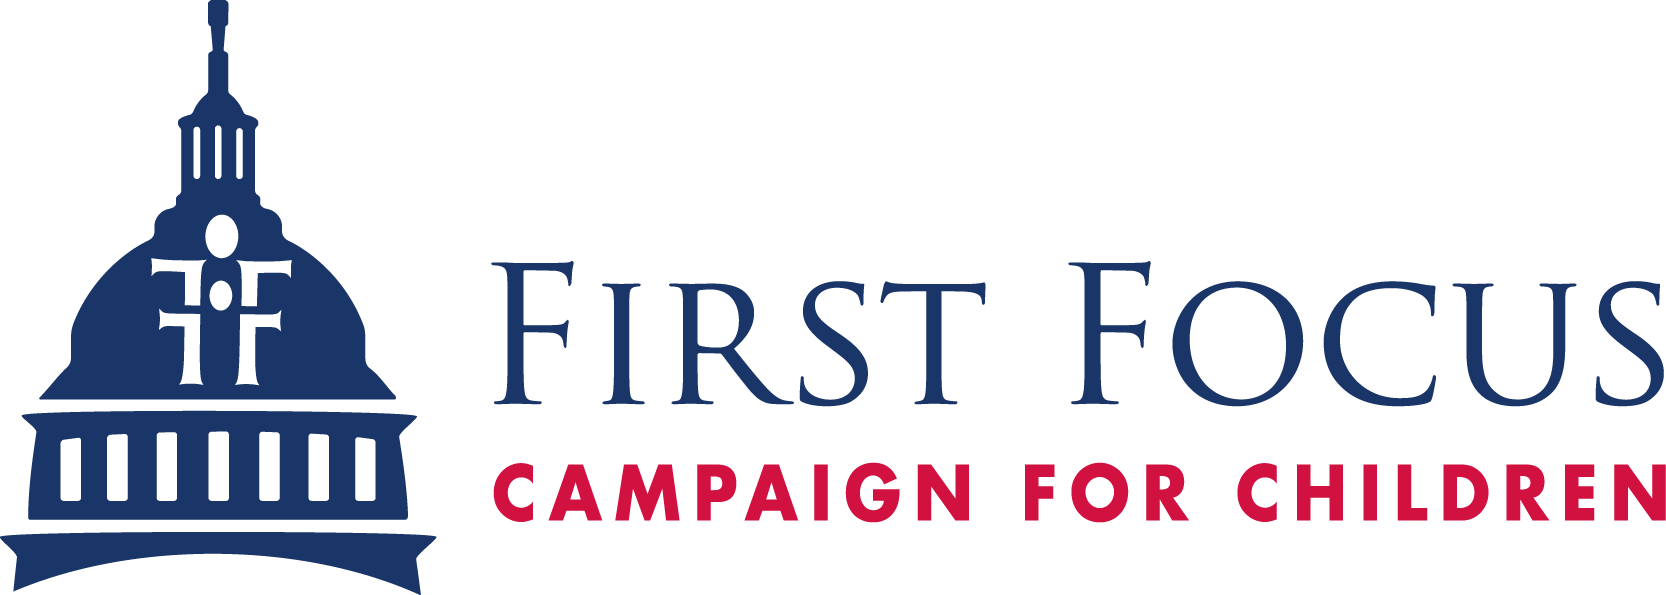 First Focus Campaign for Children